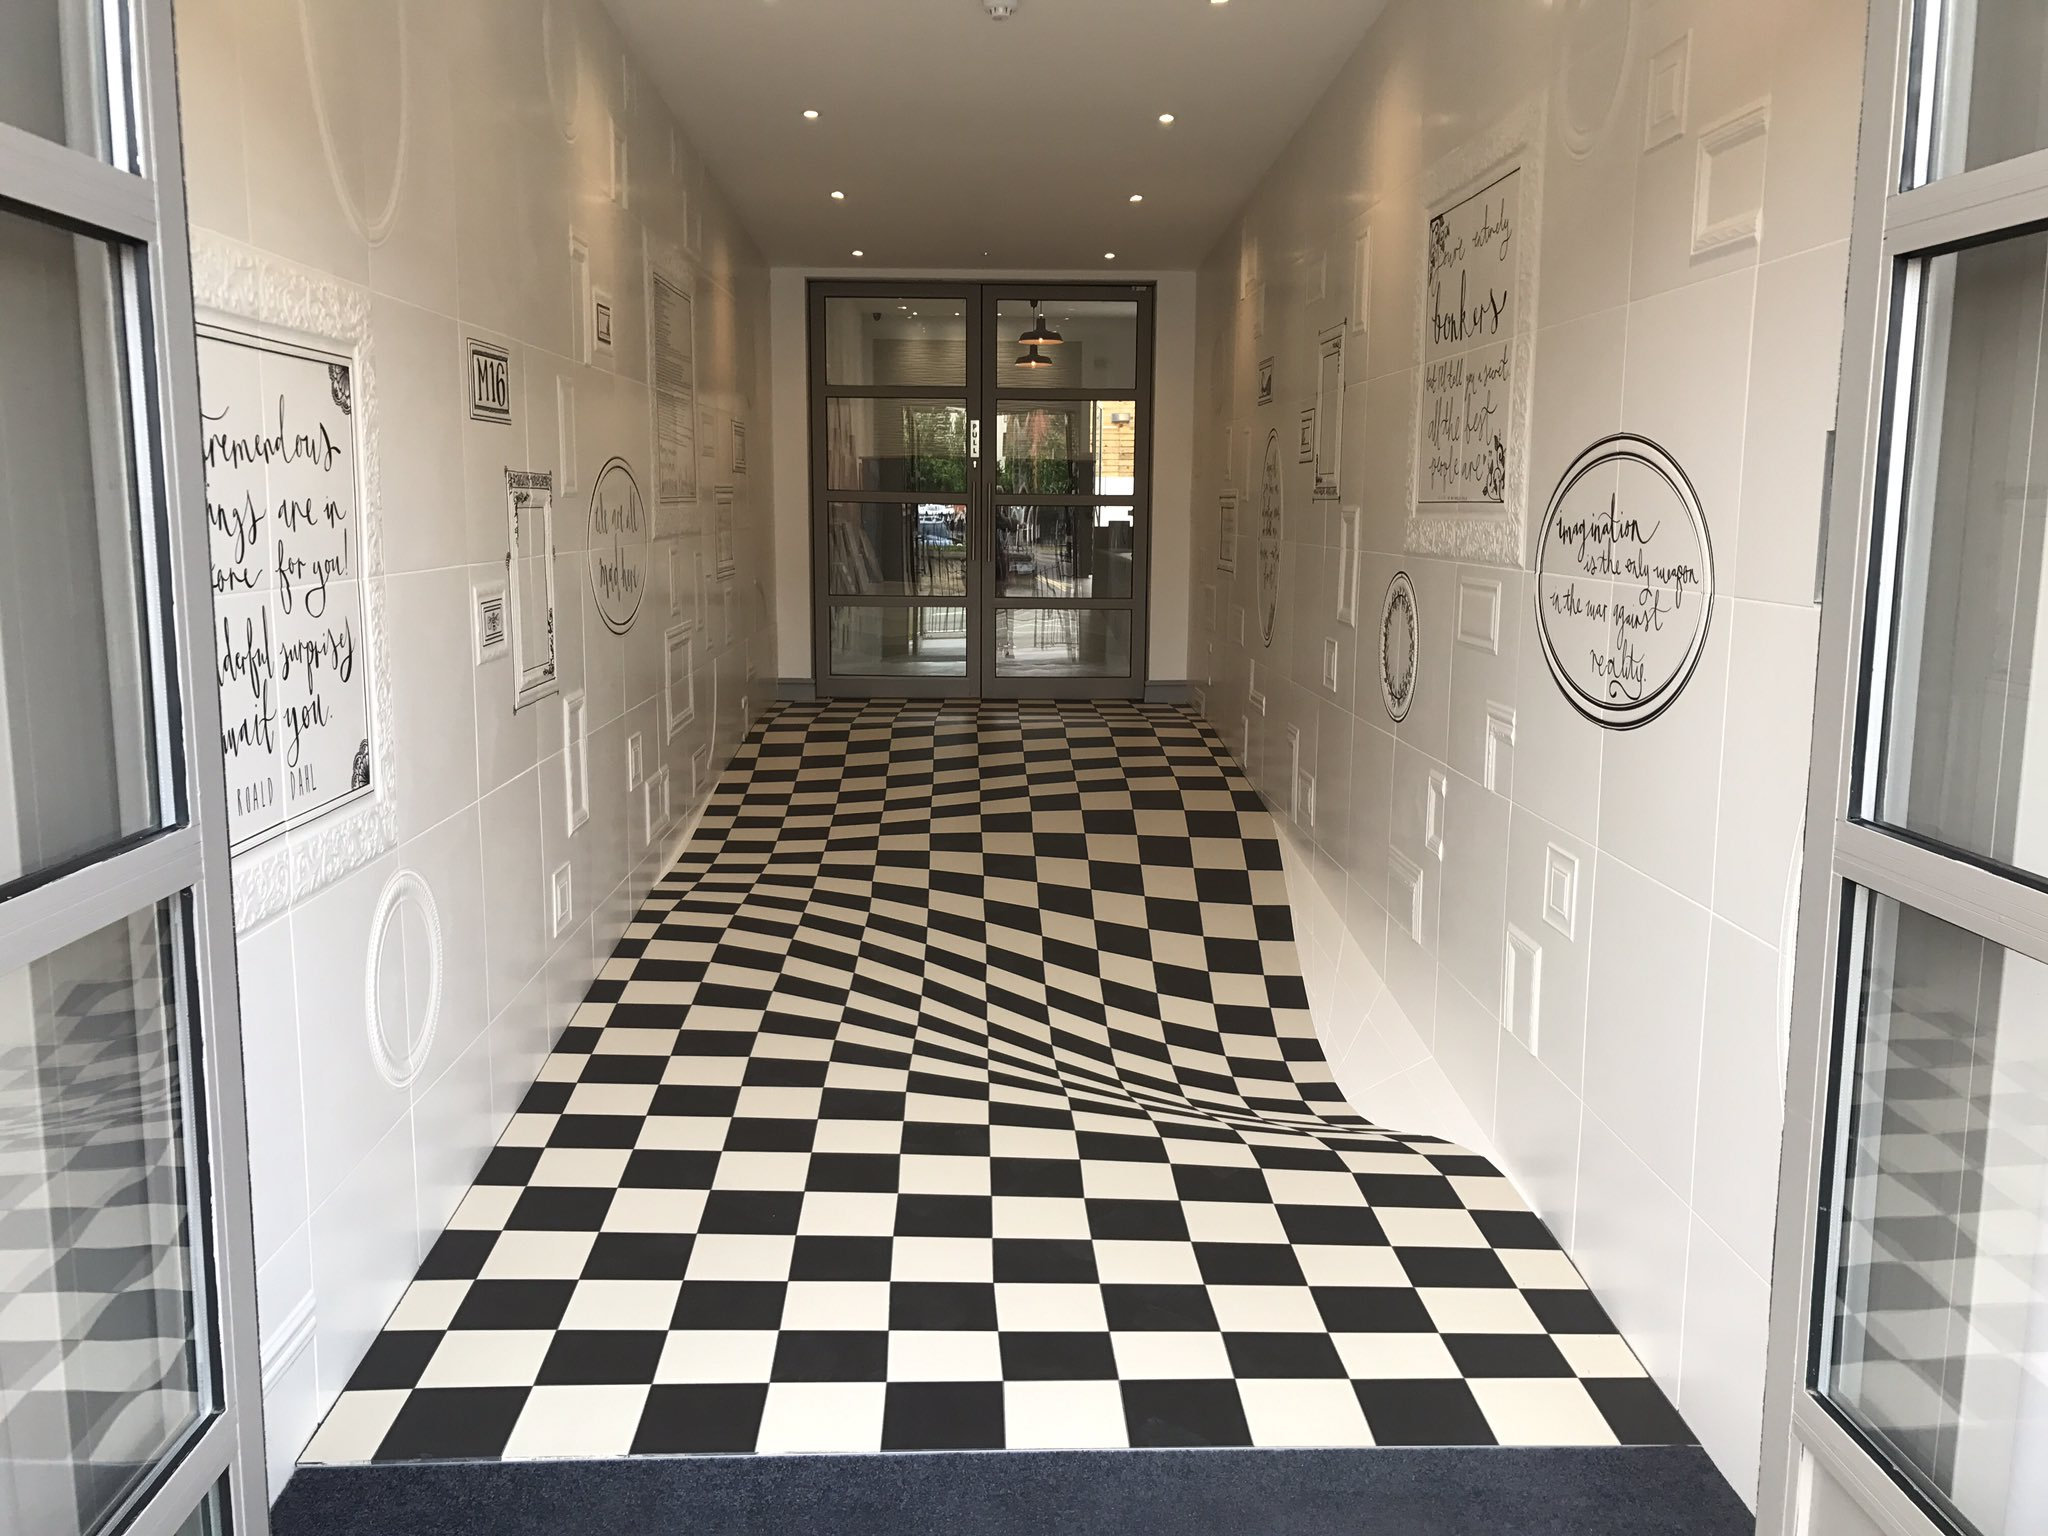 Optical Illusion Floor Made by Armatile.jpg